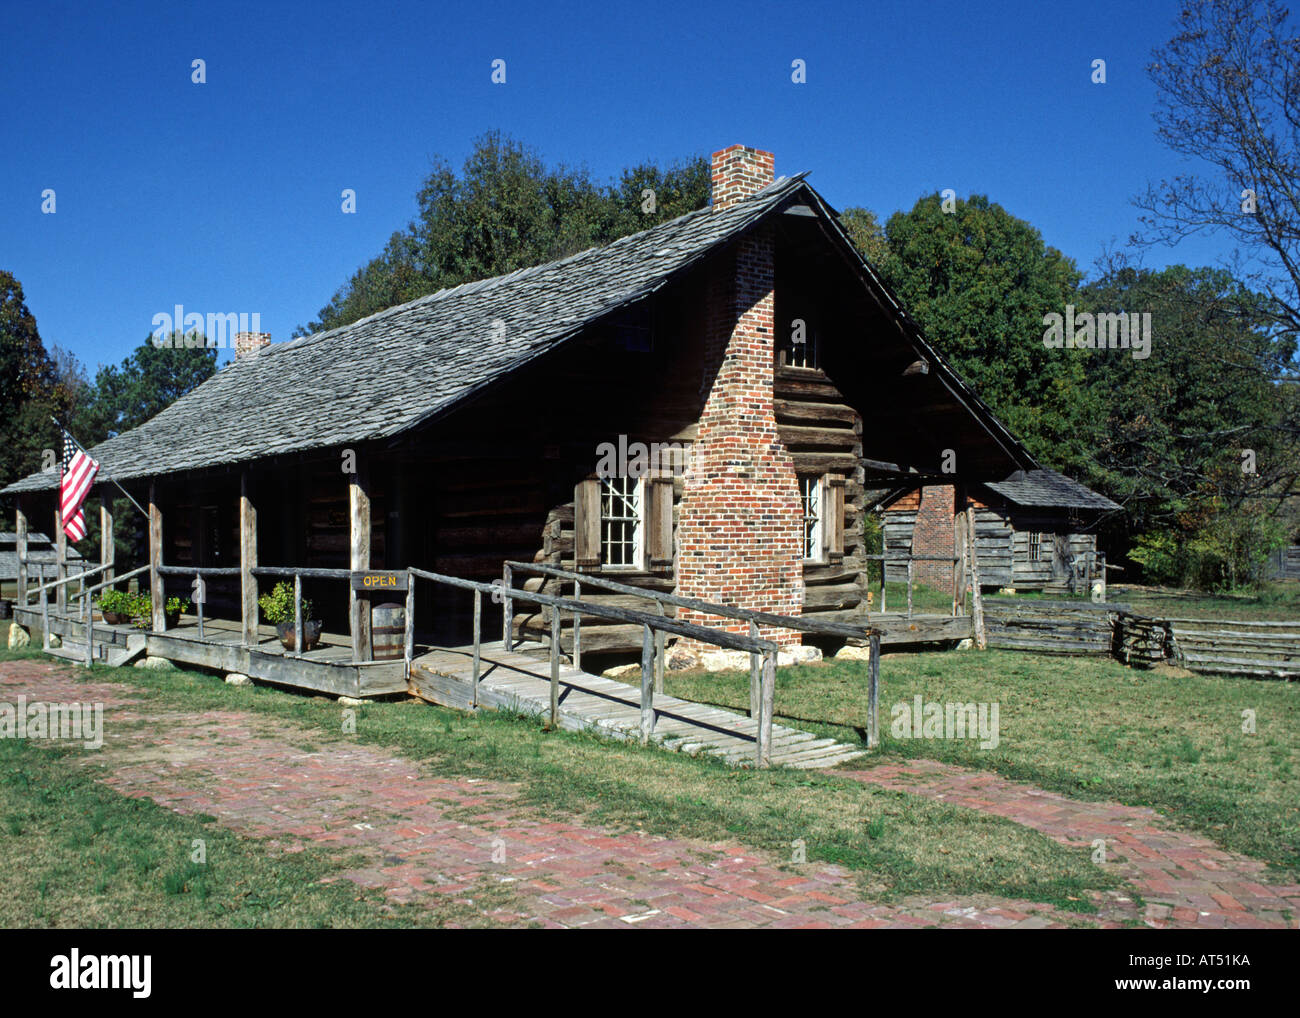 The Historic Huffman Cabin Built In 1840 Mississippi Stock